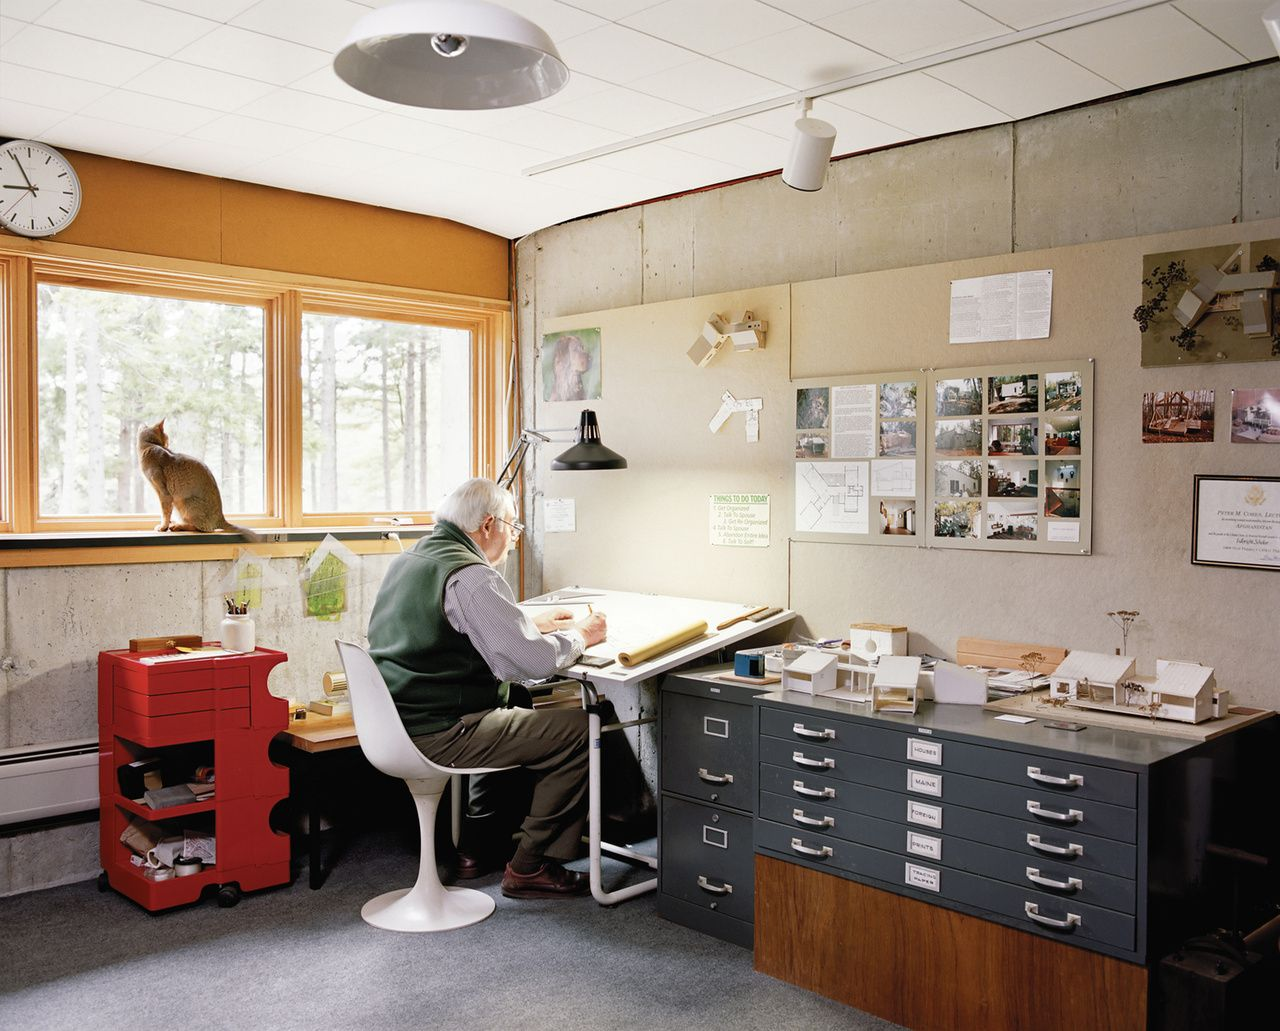 Pin by Andy Riggs on work space | Home office design ...